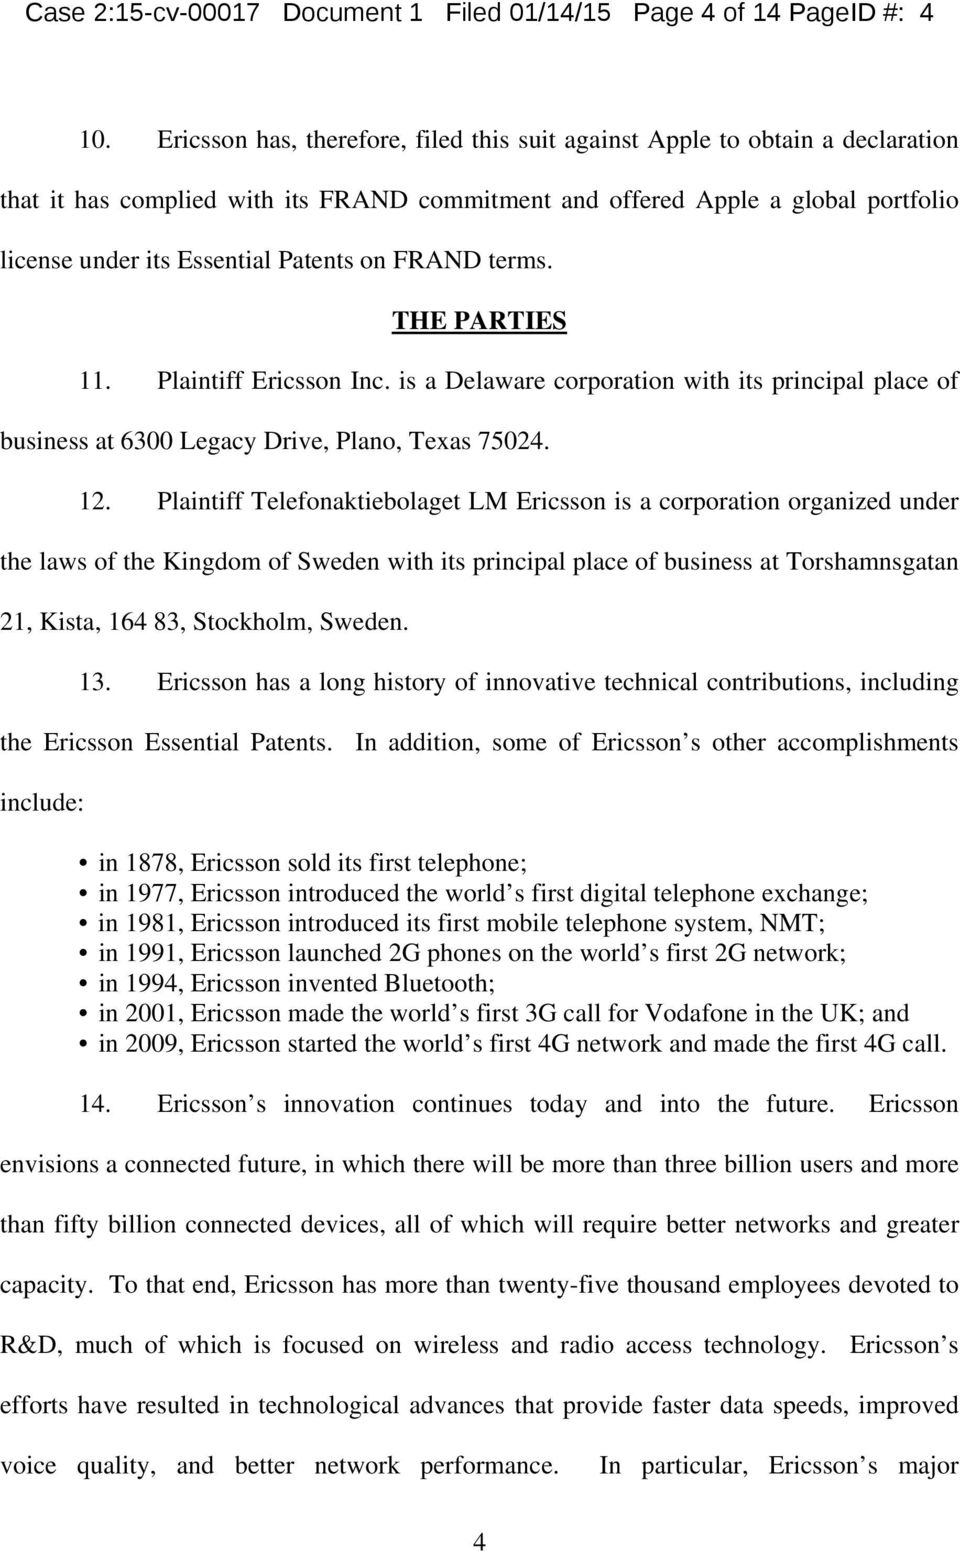 on FRAND terms. THE PARTIES 11. Plaintiff Ericsson Inc. is a Delaware corporation with its principal place of business at 6300 Legacy Drive, Plano, Texas 75024. 12.